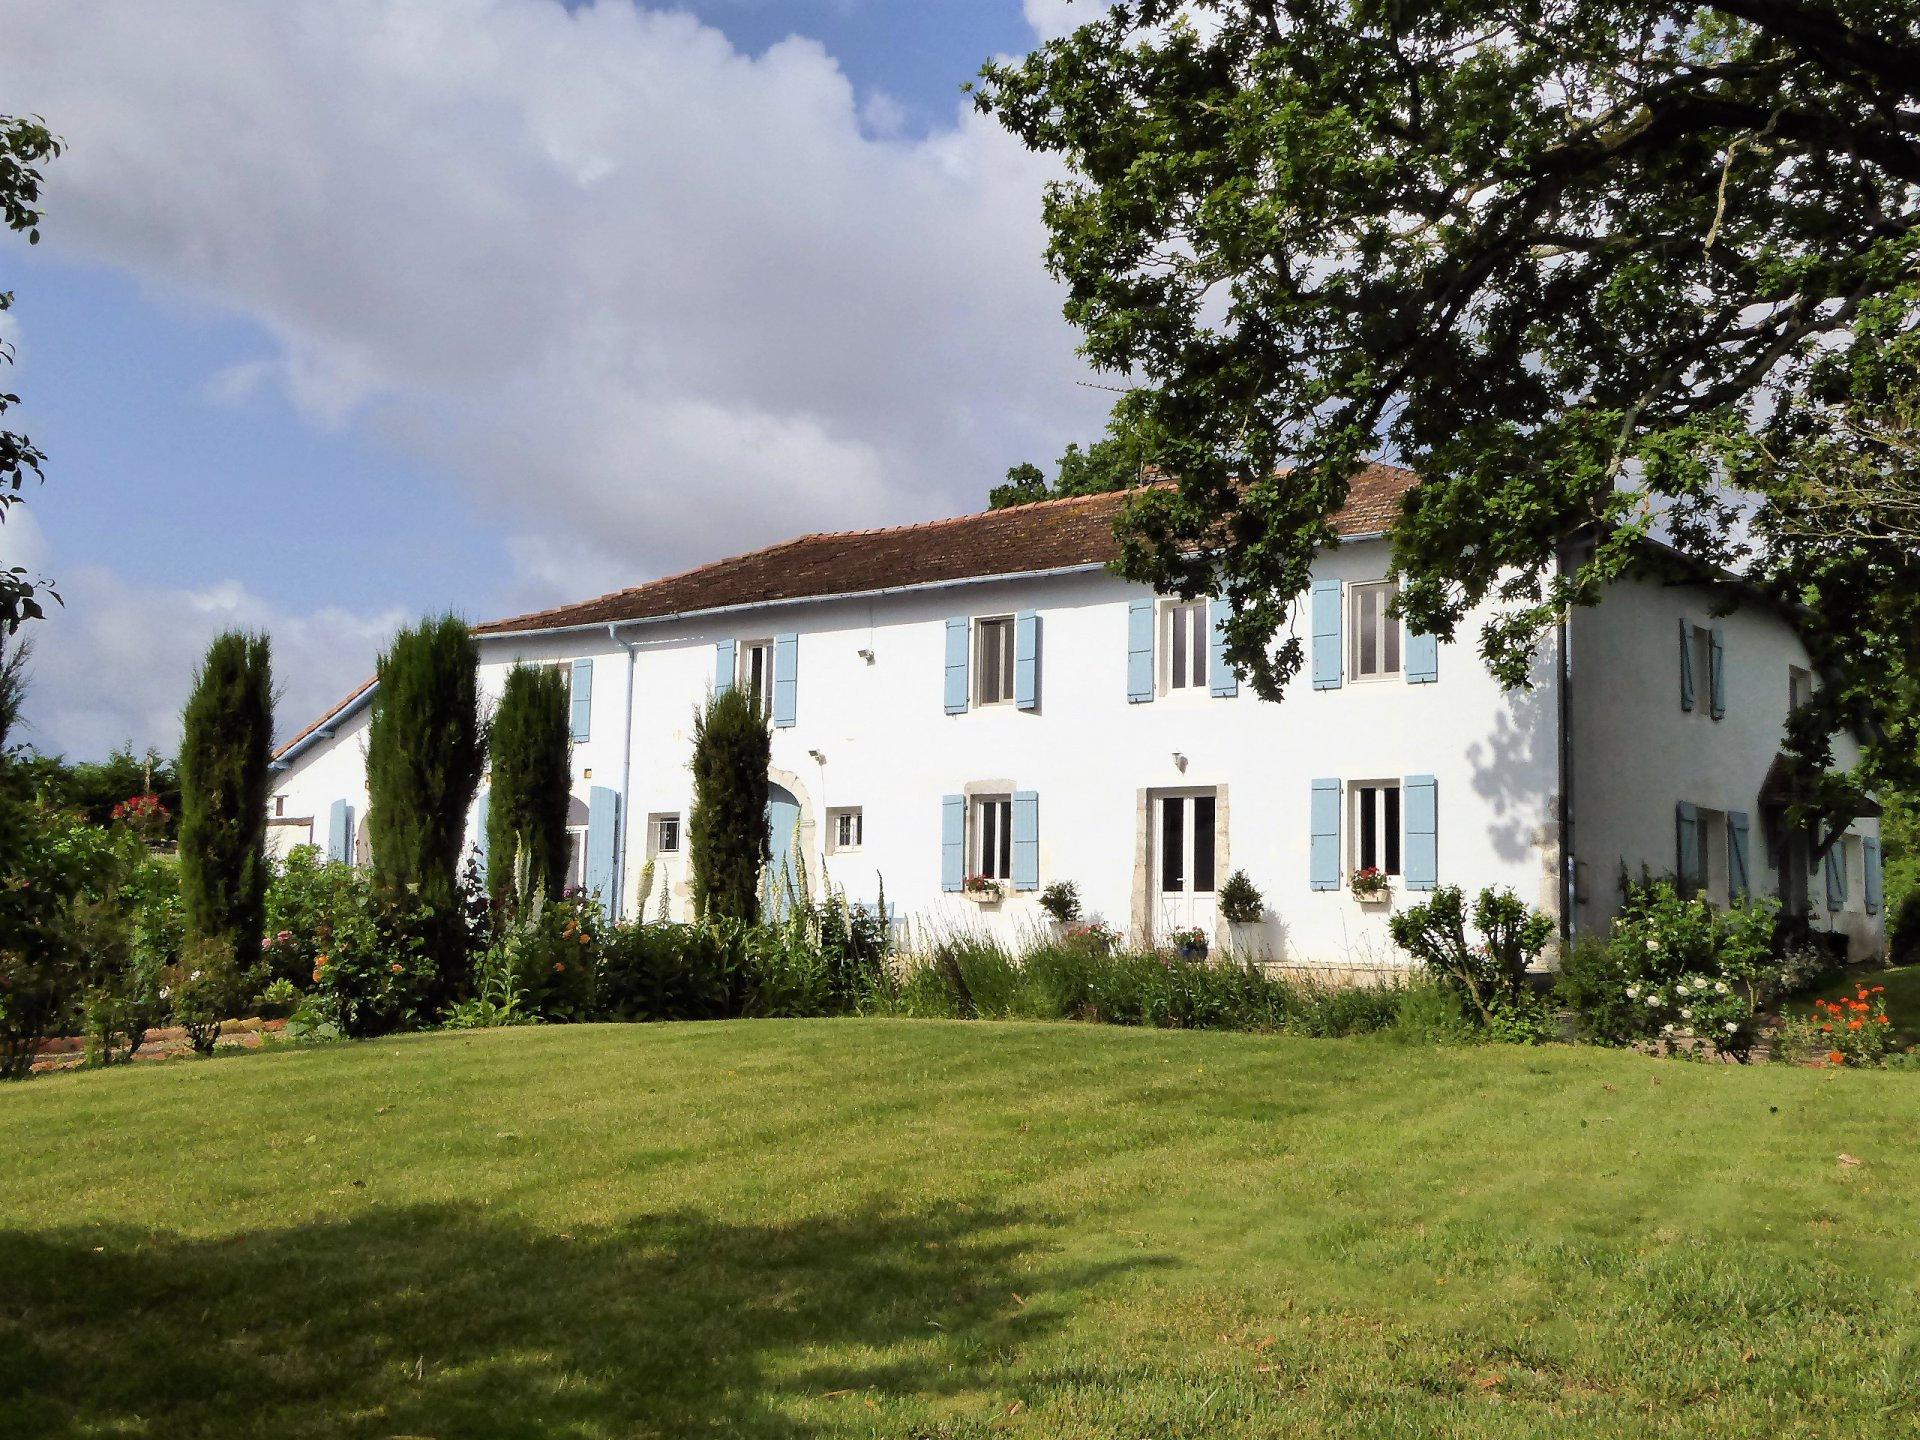 Near AMOU - Beautiful renovated Landaise Farmhouse with pool and outbuildings.